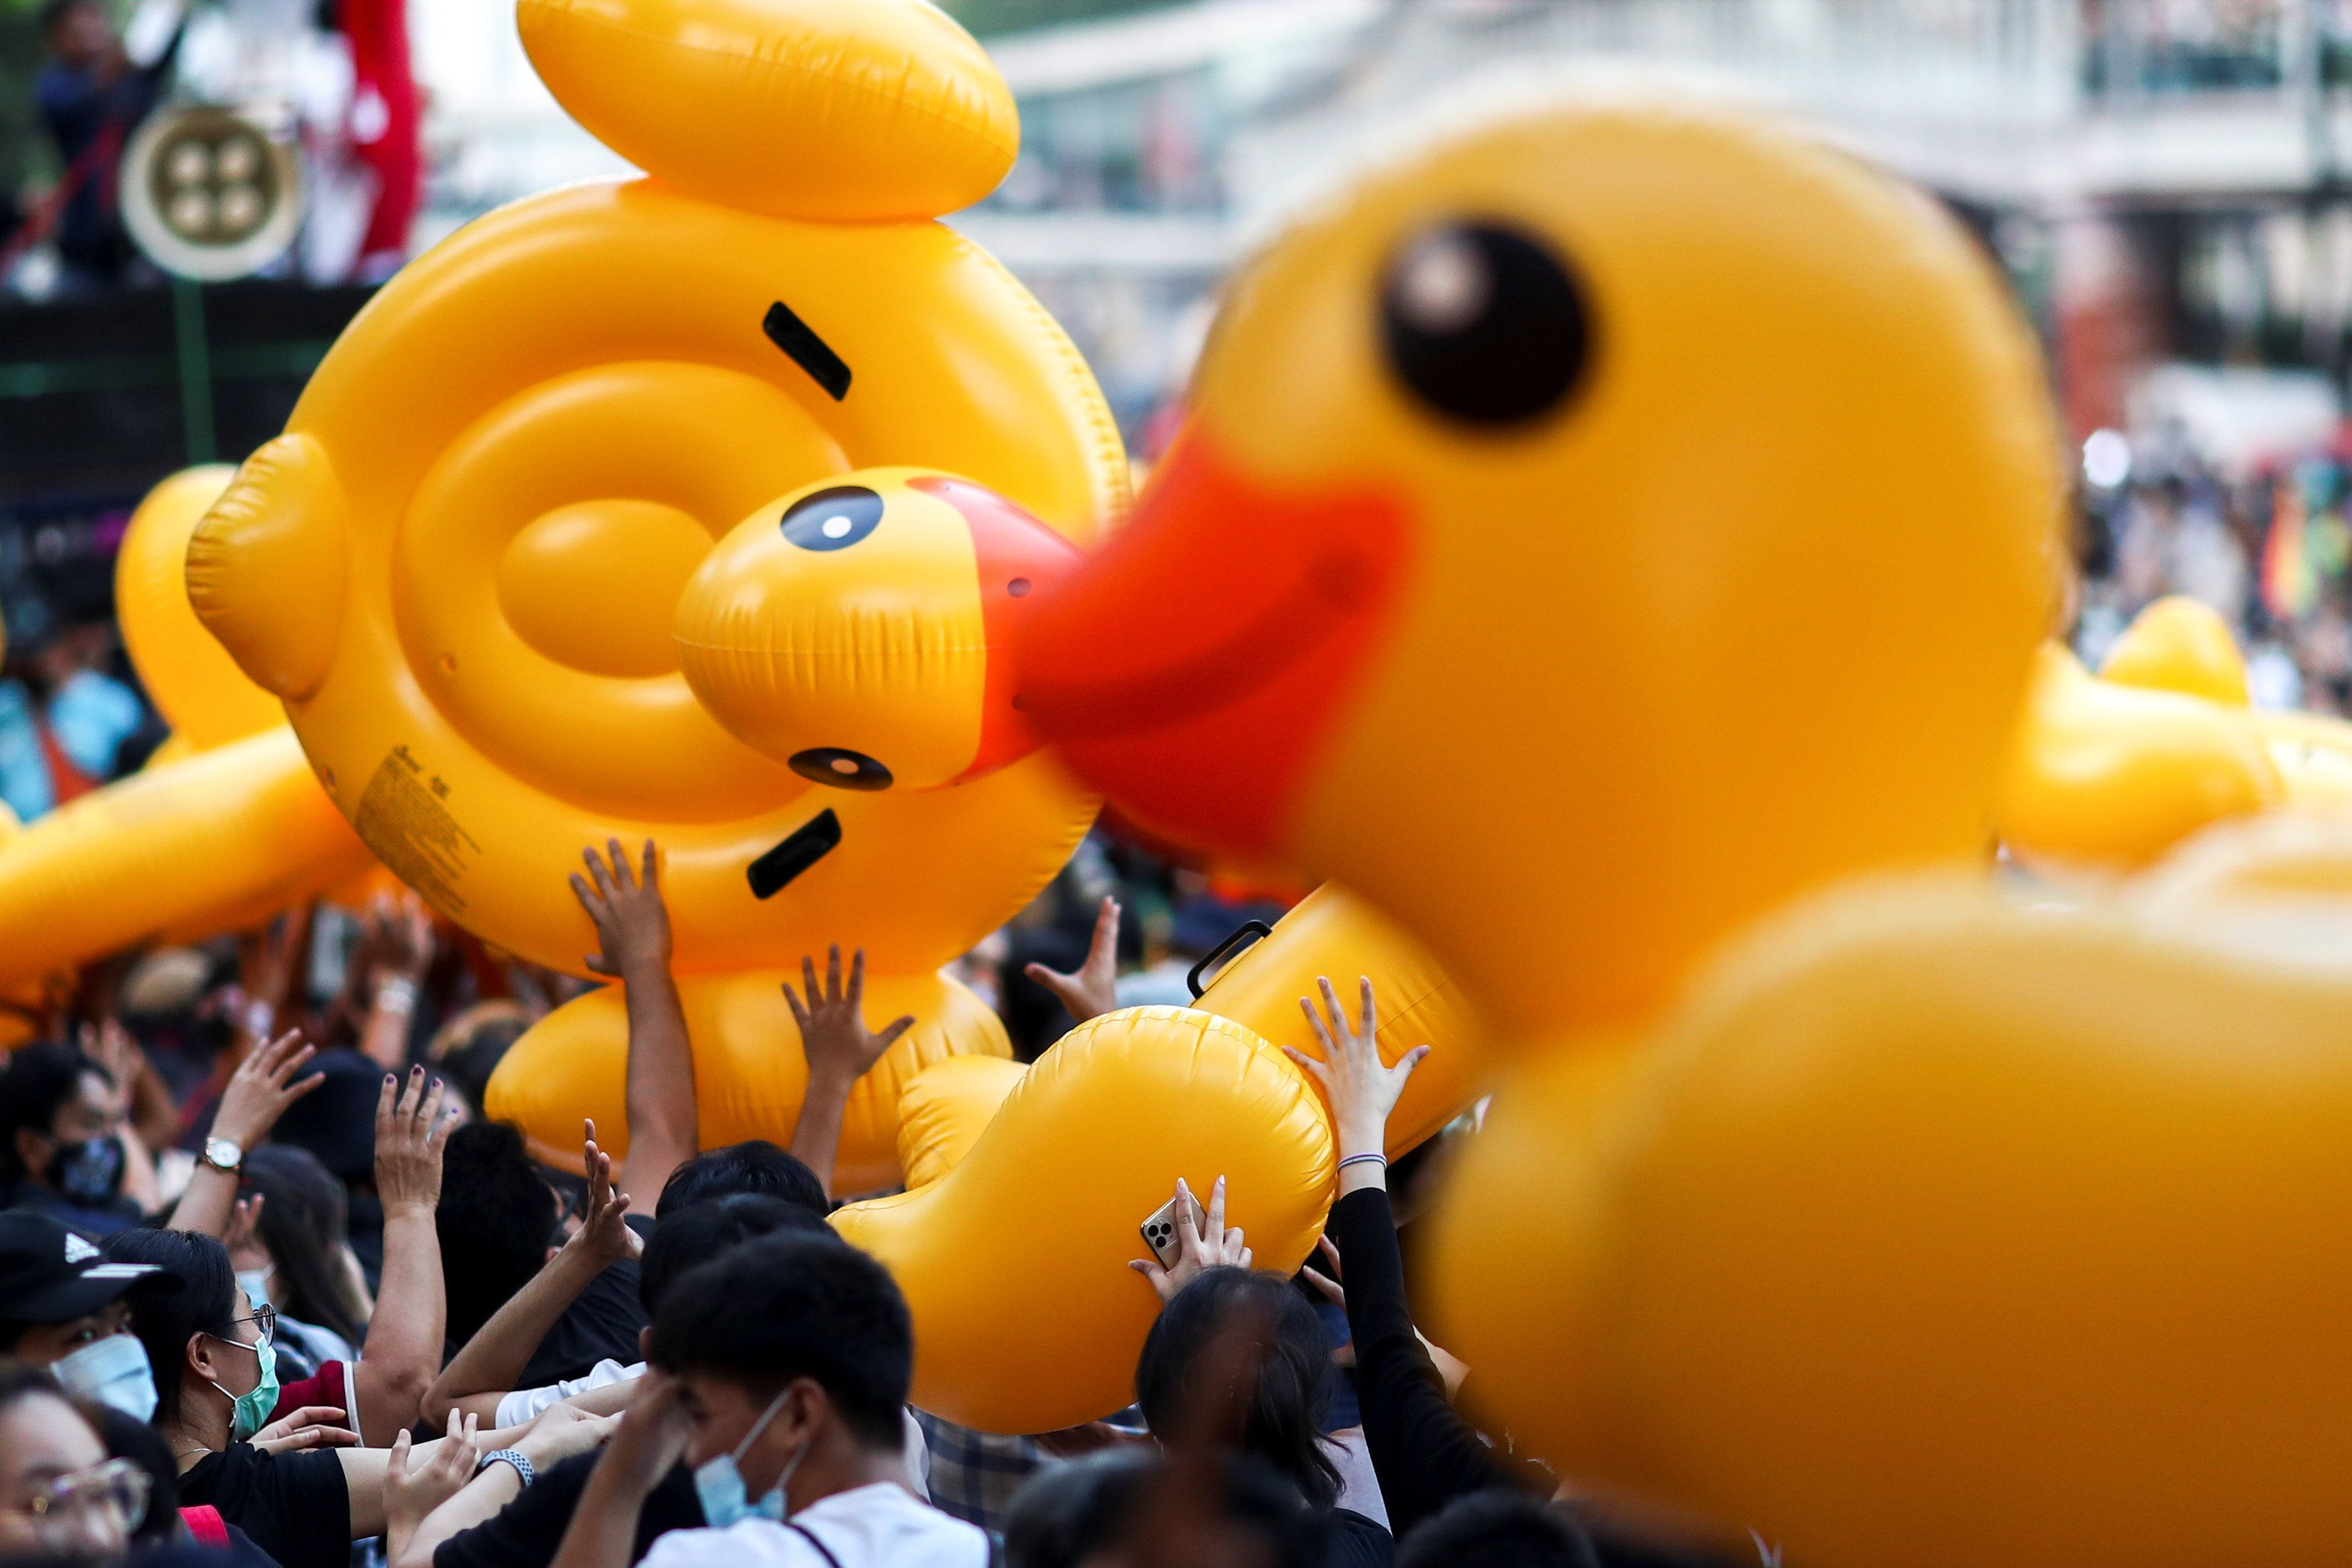 Pro-demonstrators carry inflatable rubber ducks during a rally in Bangkok. Reuters